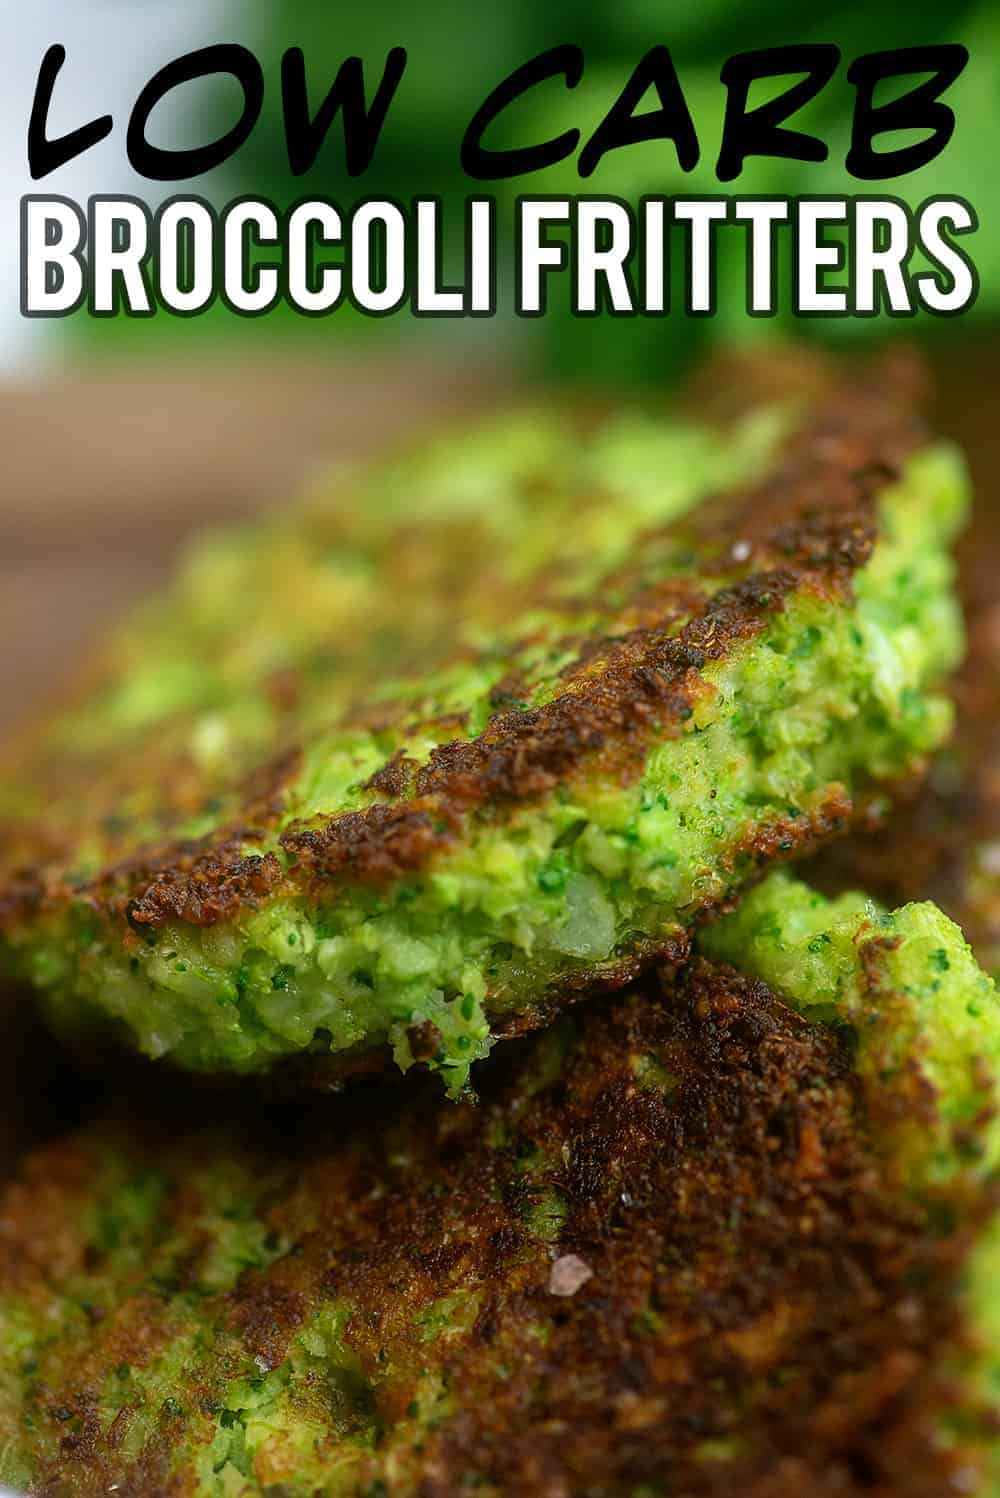 A close up of a broccoli fritter leaning against another fritter.